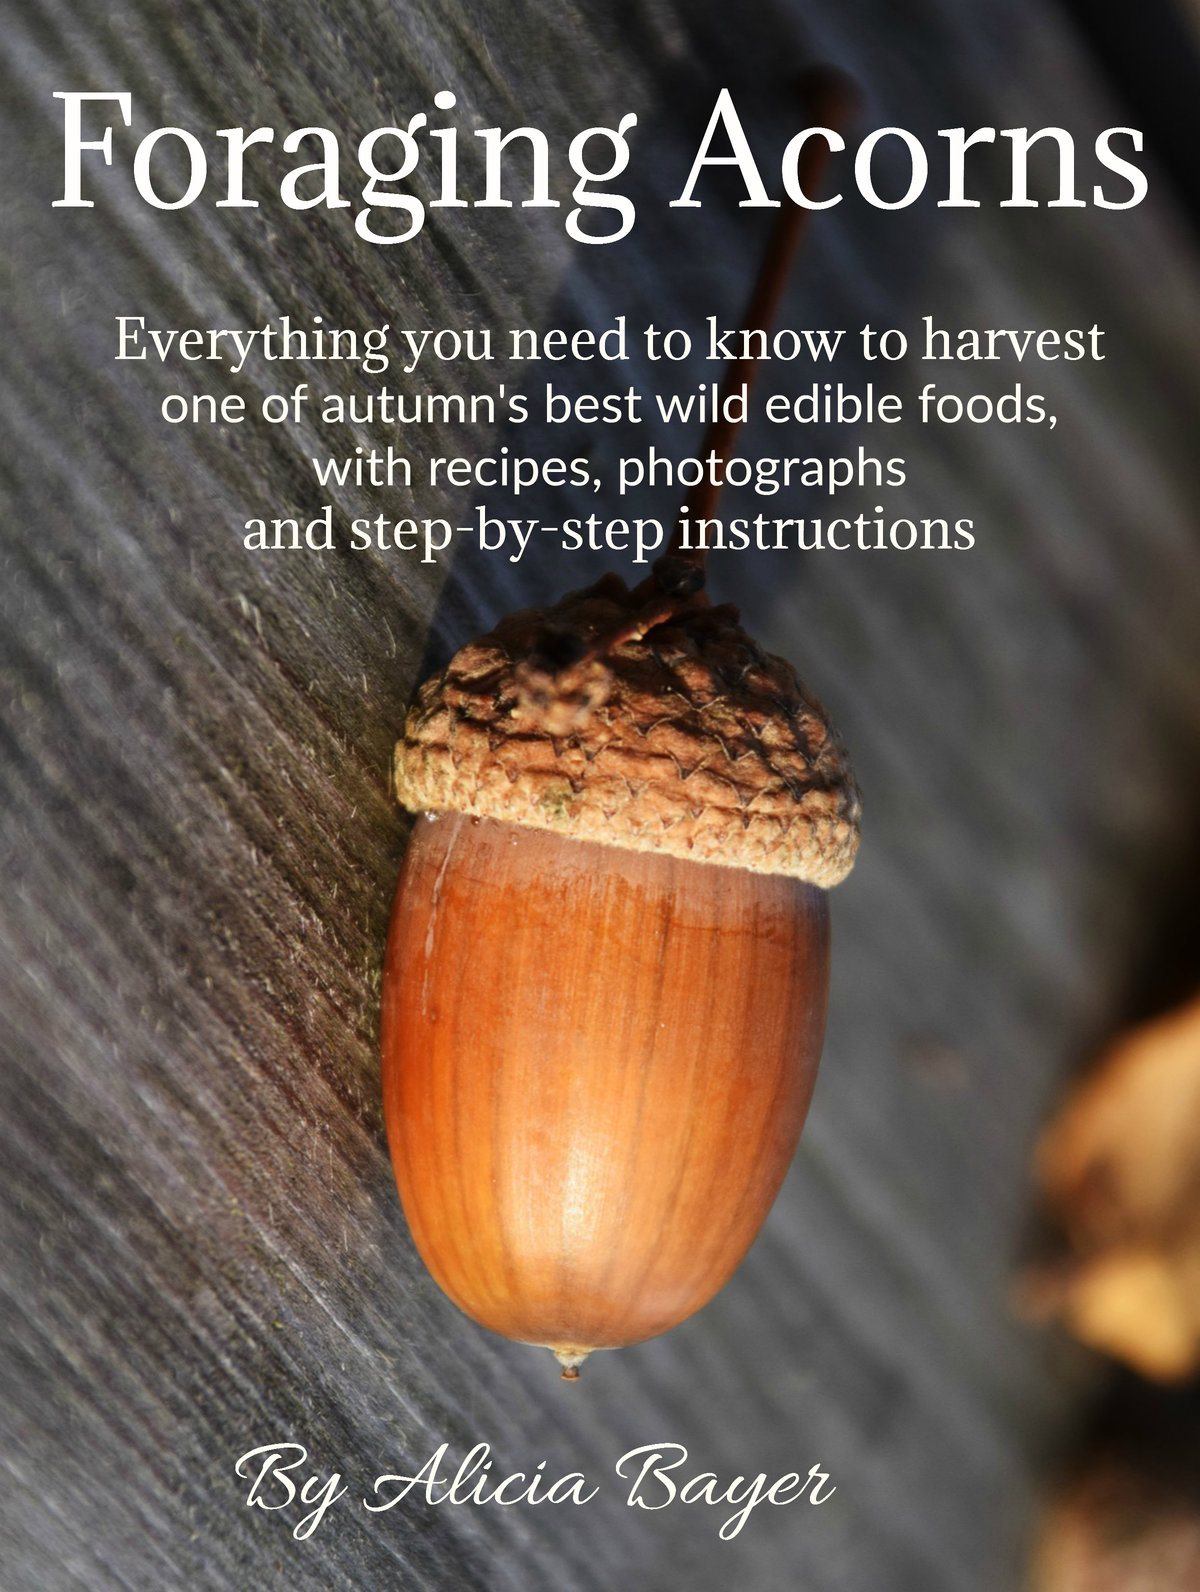 Coming soon to Kindle -- Foraging Acorns